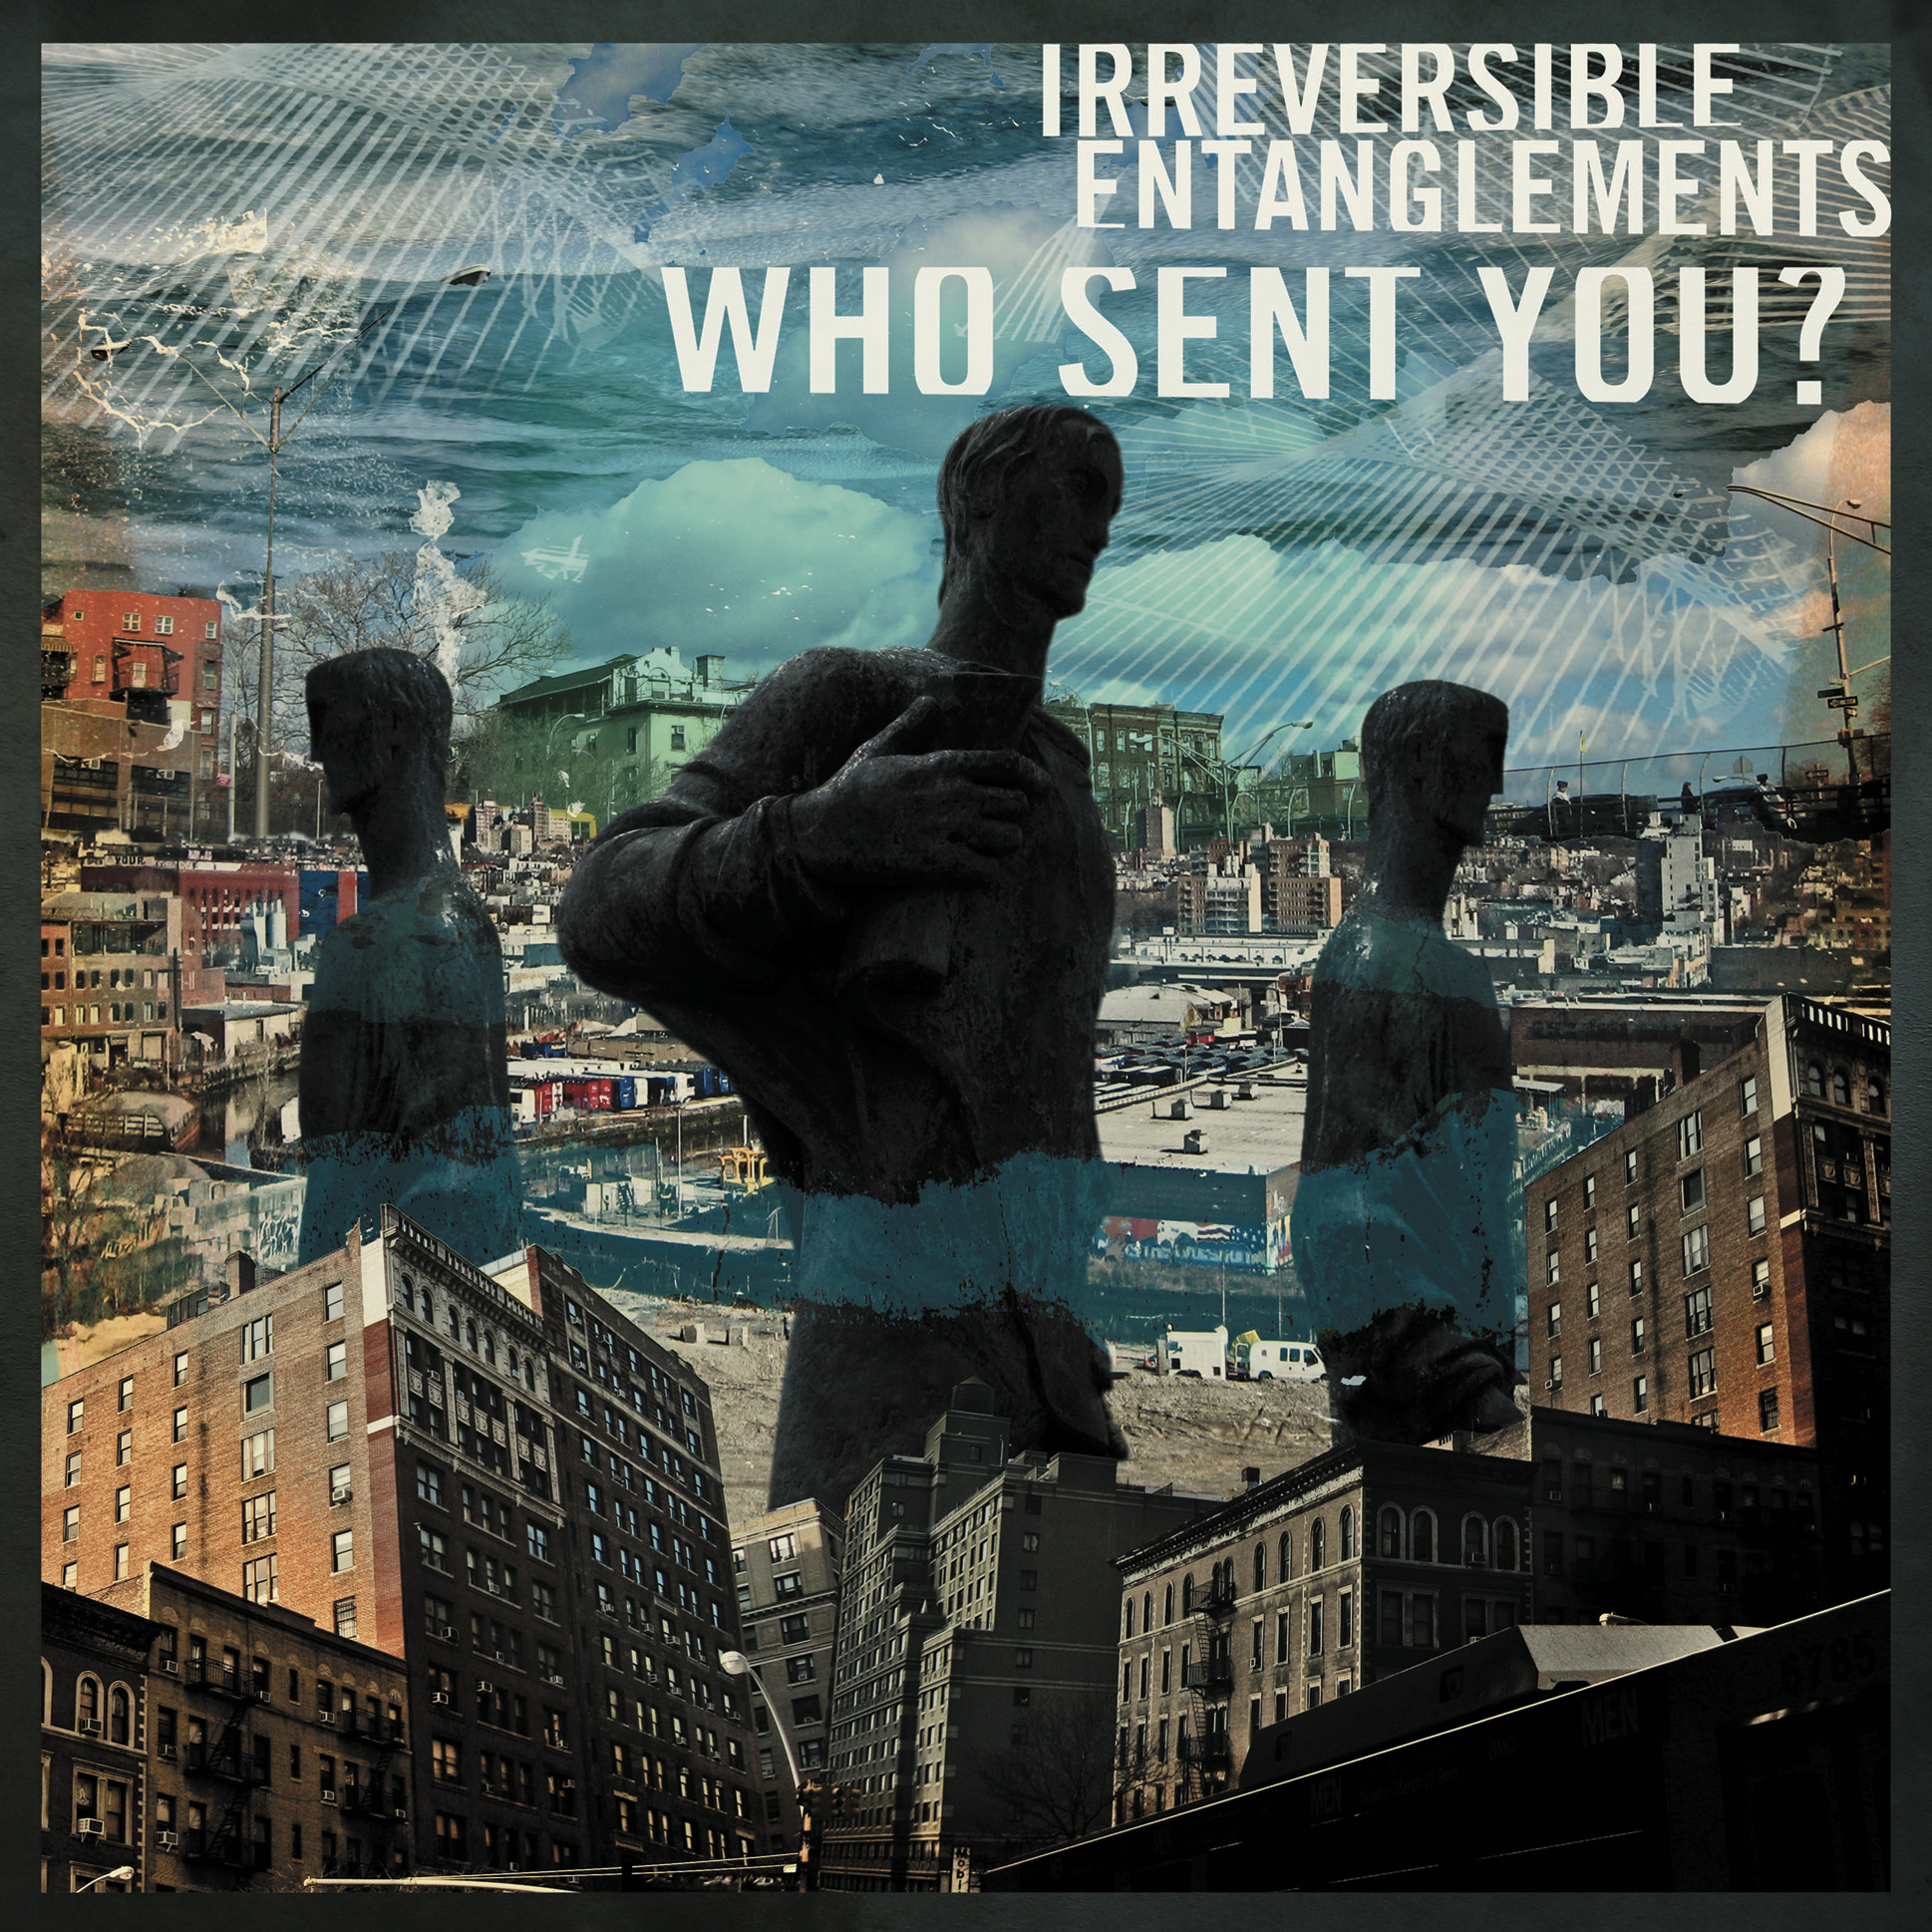 Irreversible Entanglements new album Who Sent You